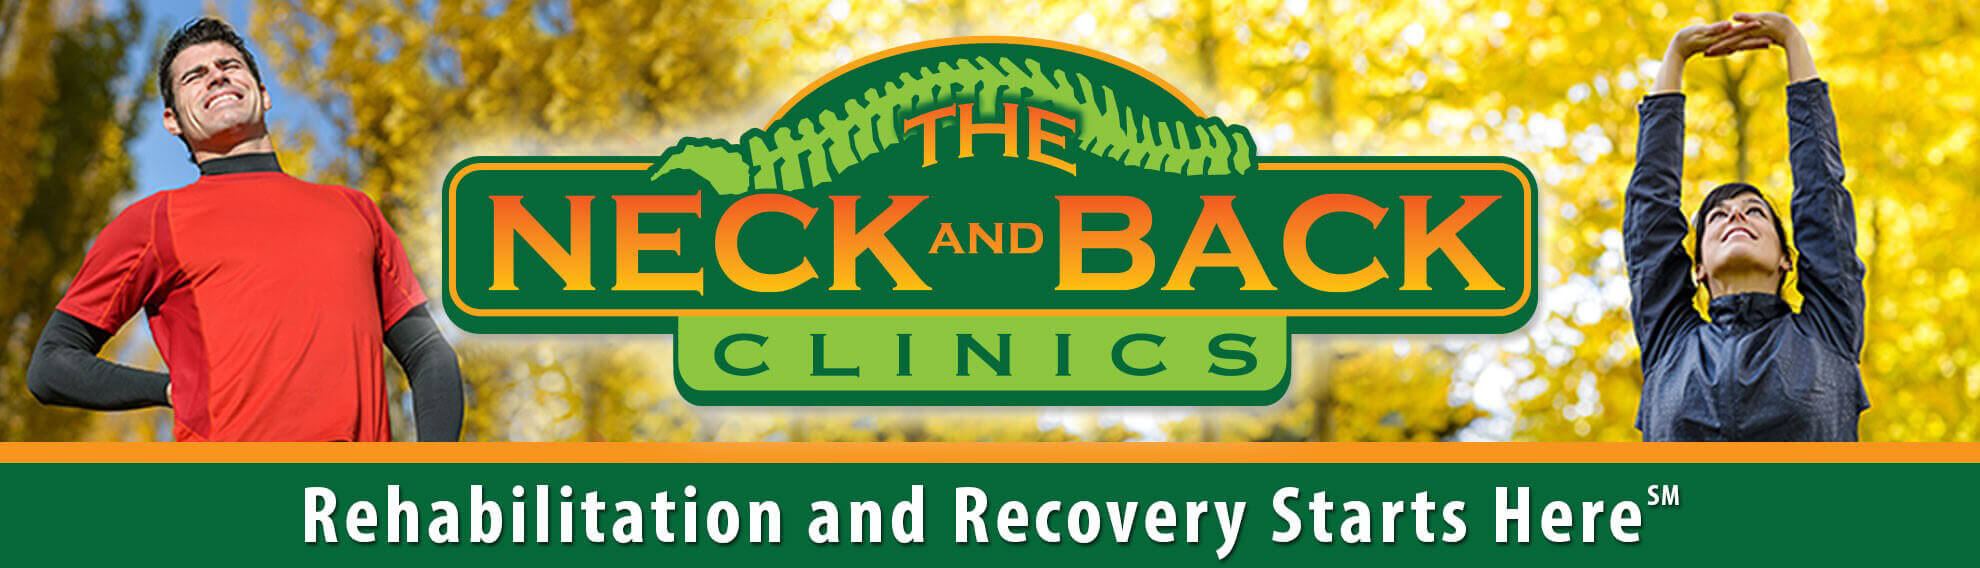 The neck and back clinics